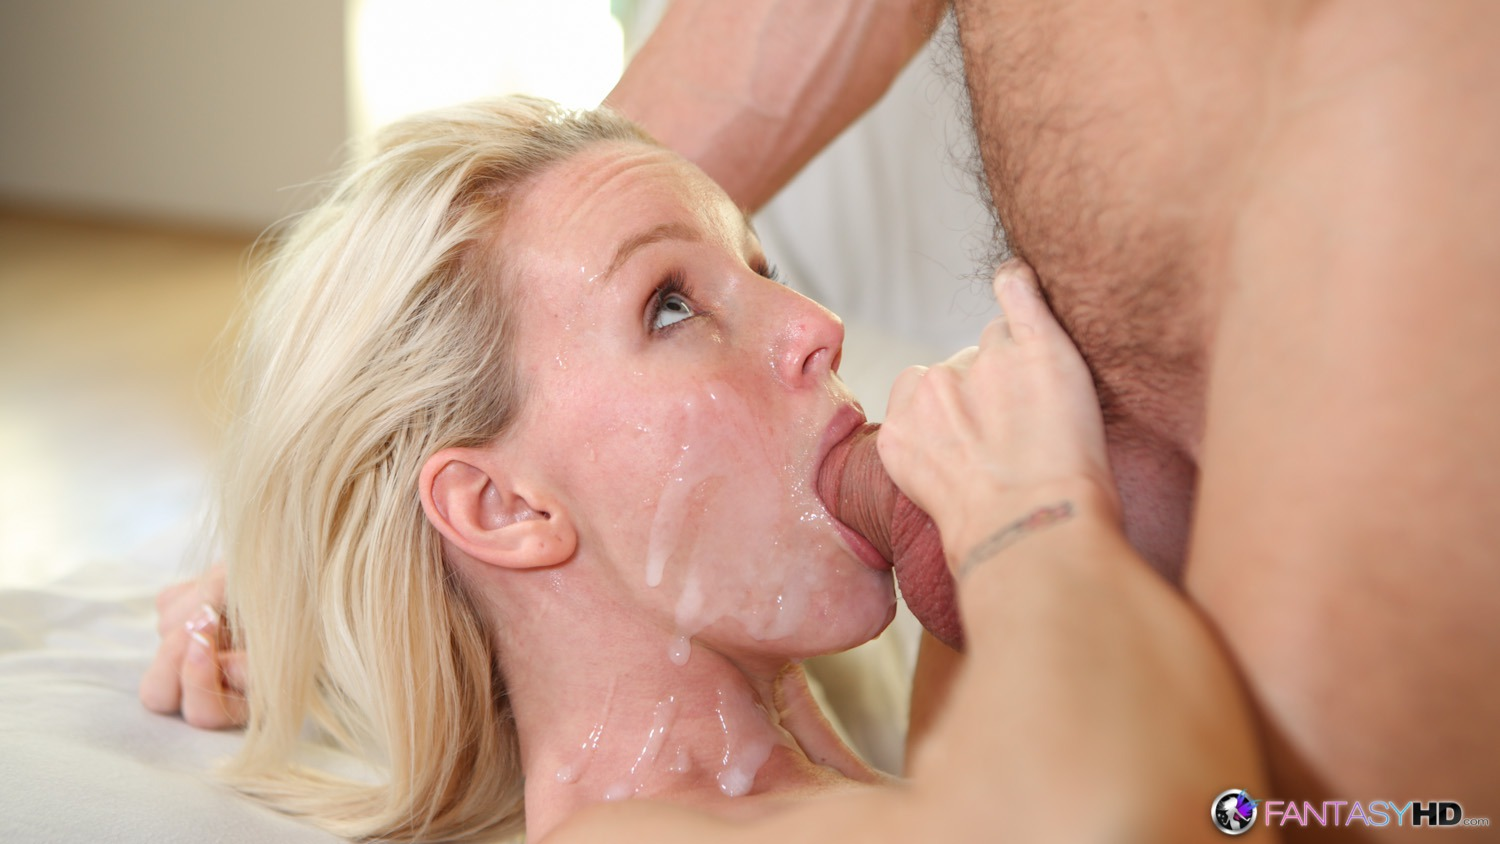 girl sees cum for the first time